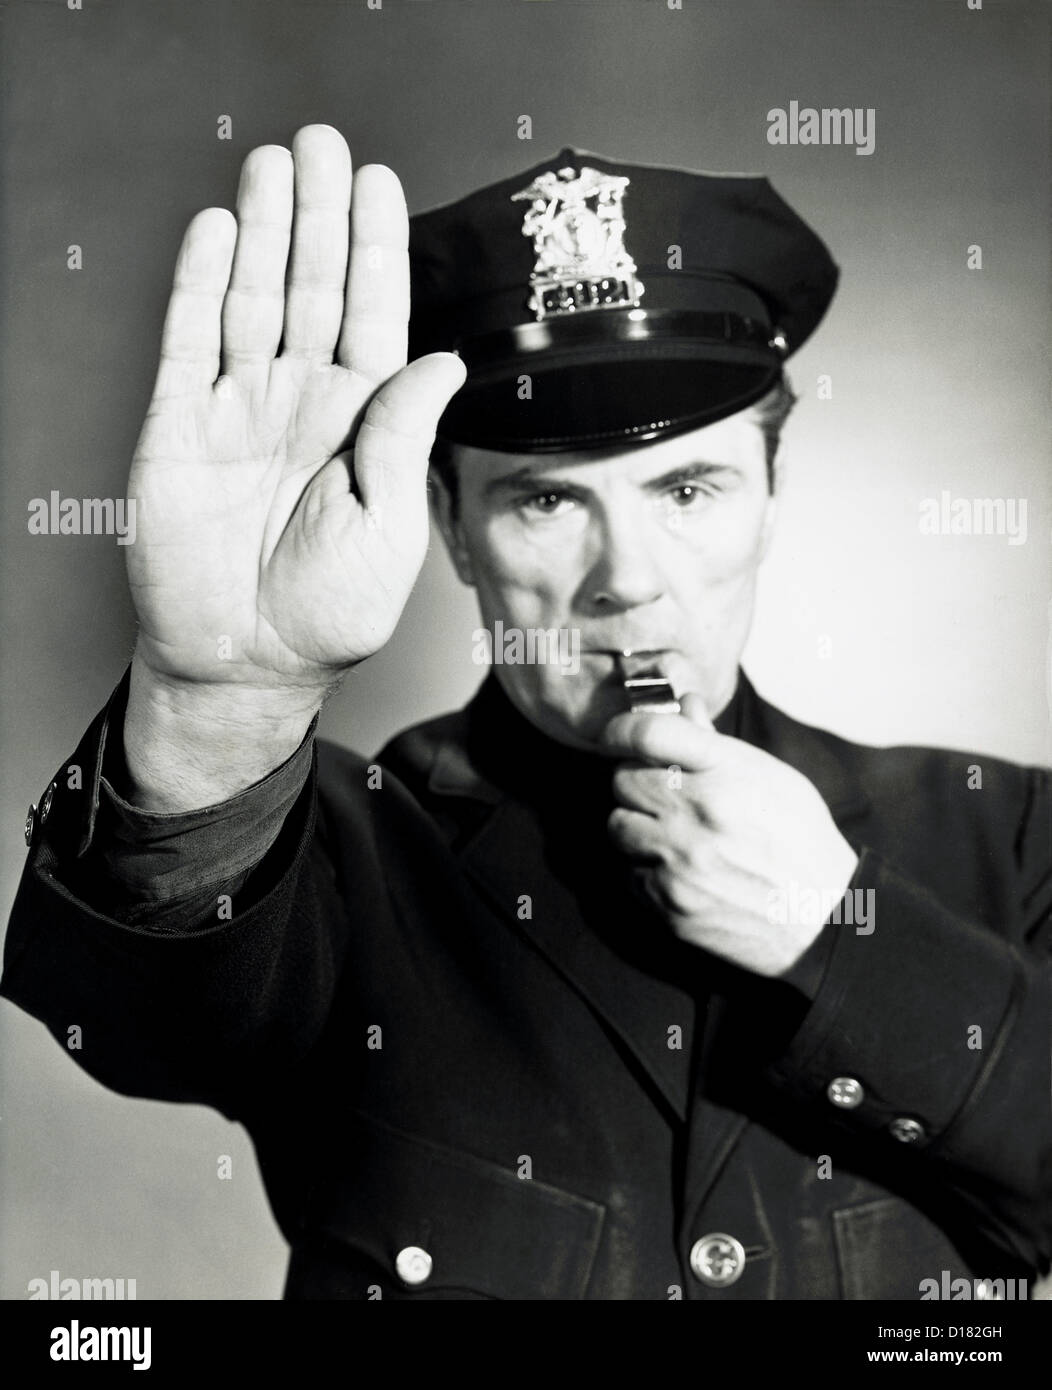 Historic portrait of policeman blowing a whistle, 1950-60's Stock ...